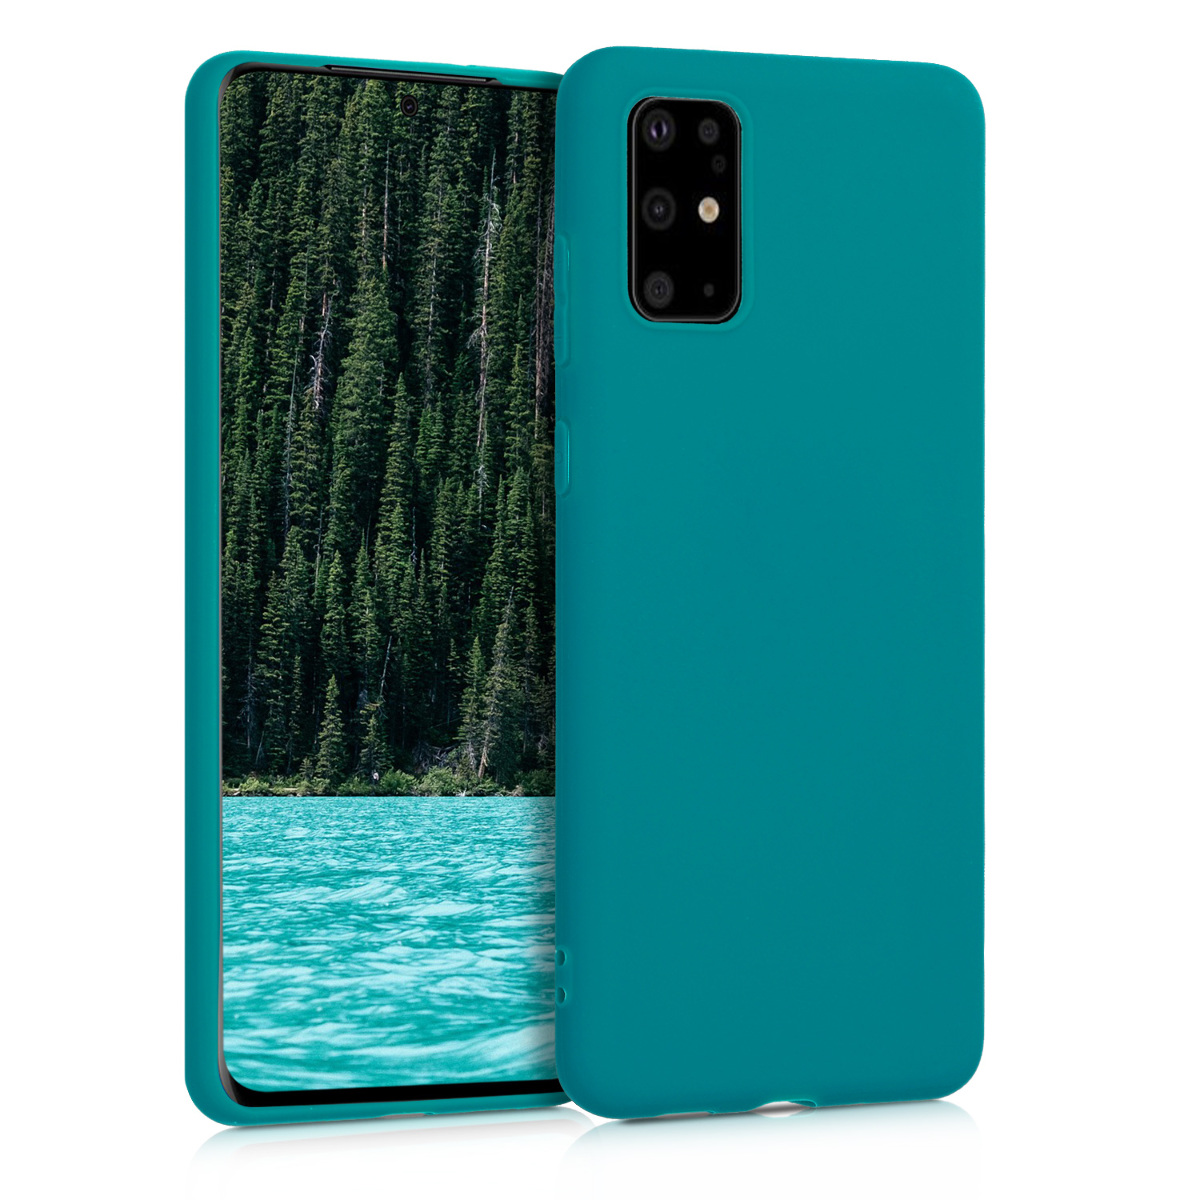 KW Θήκη Σιλικόνης Samsung Galaxy S20 Plus - Teal Matte (51216.57)